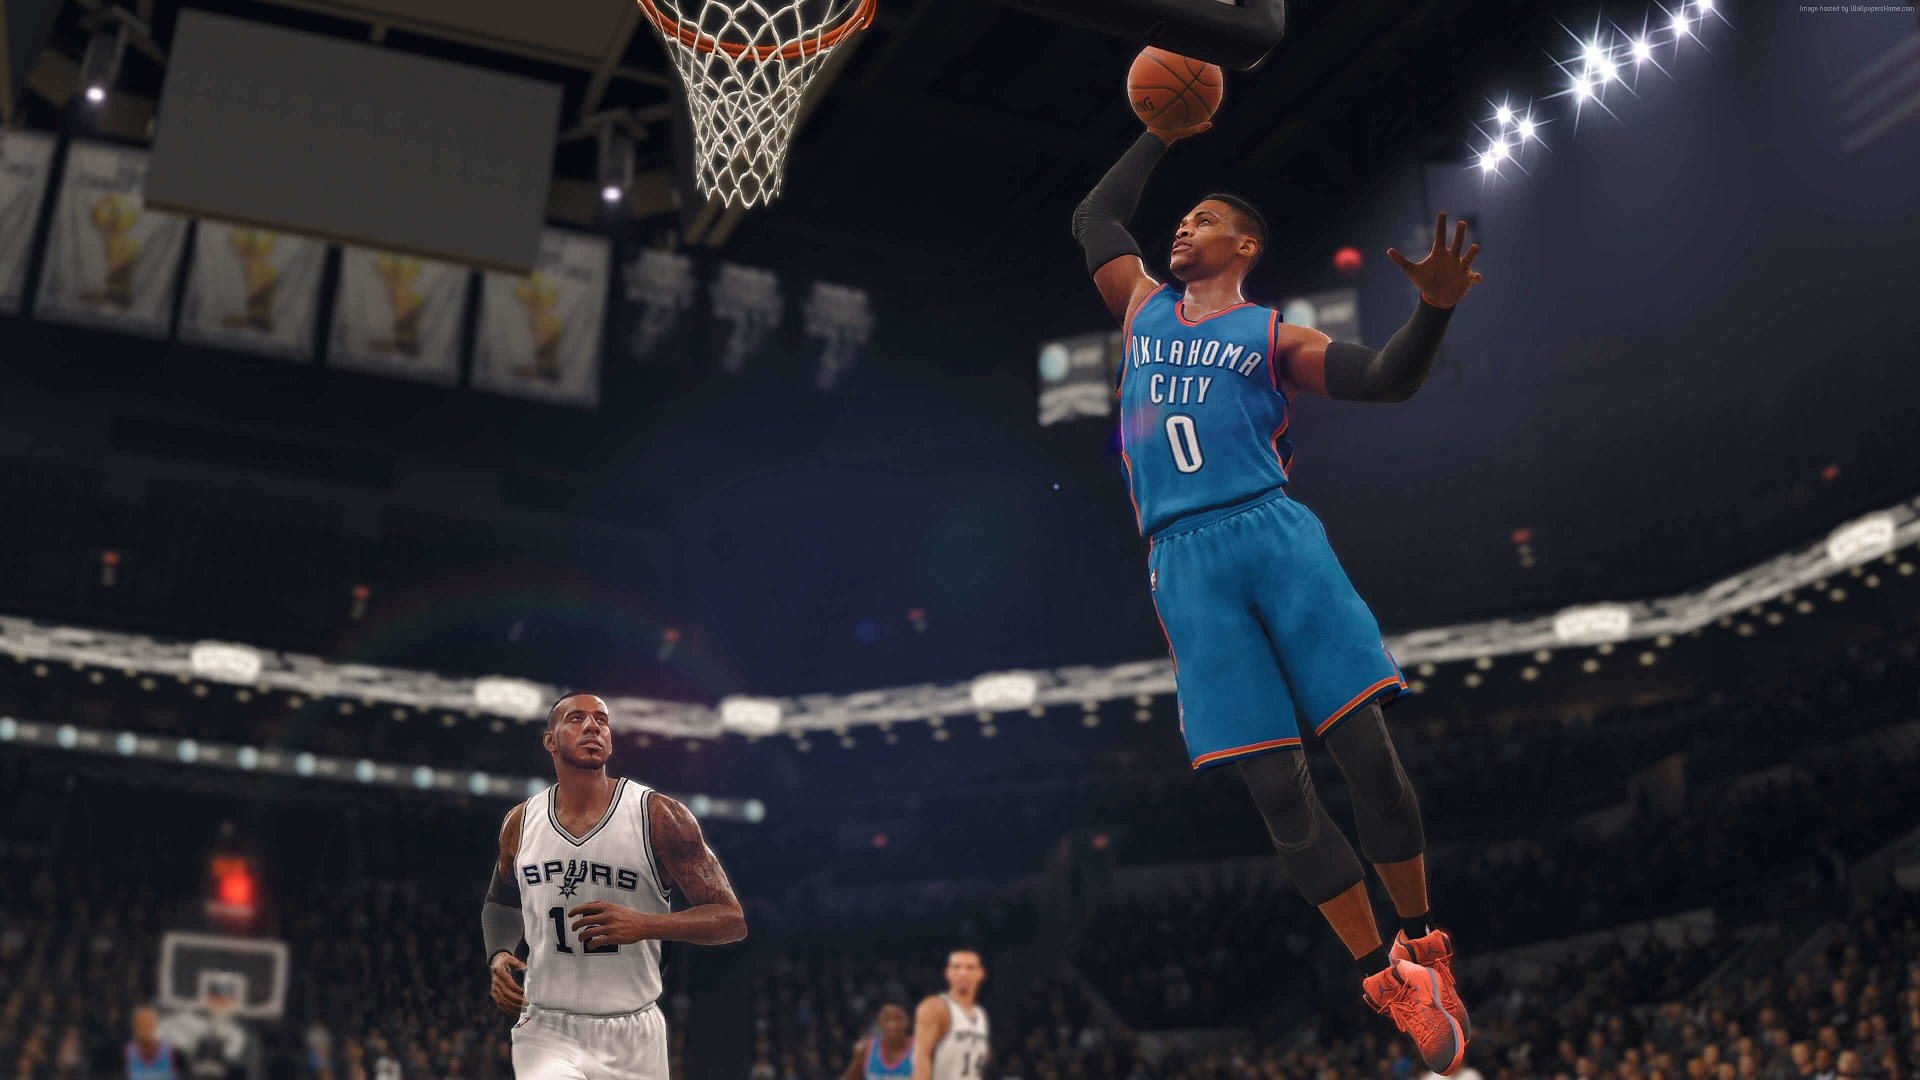 Nba Live 18 Hd Wallpapers Read Games Reviews Play